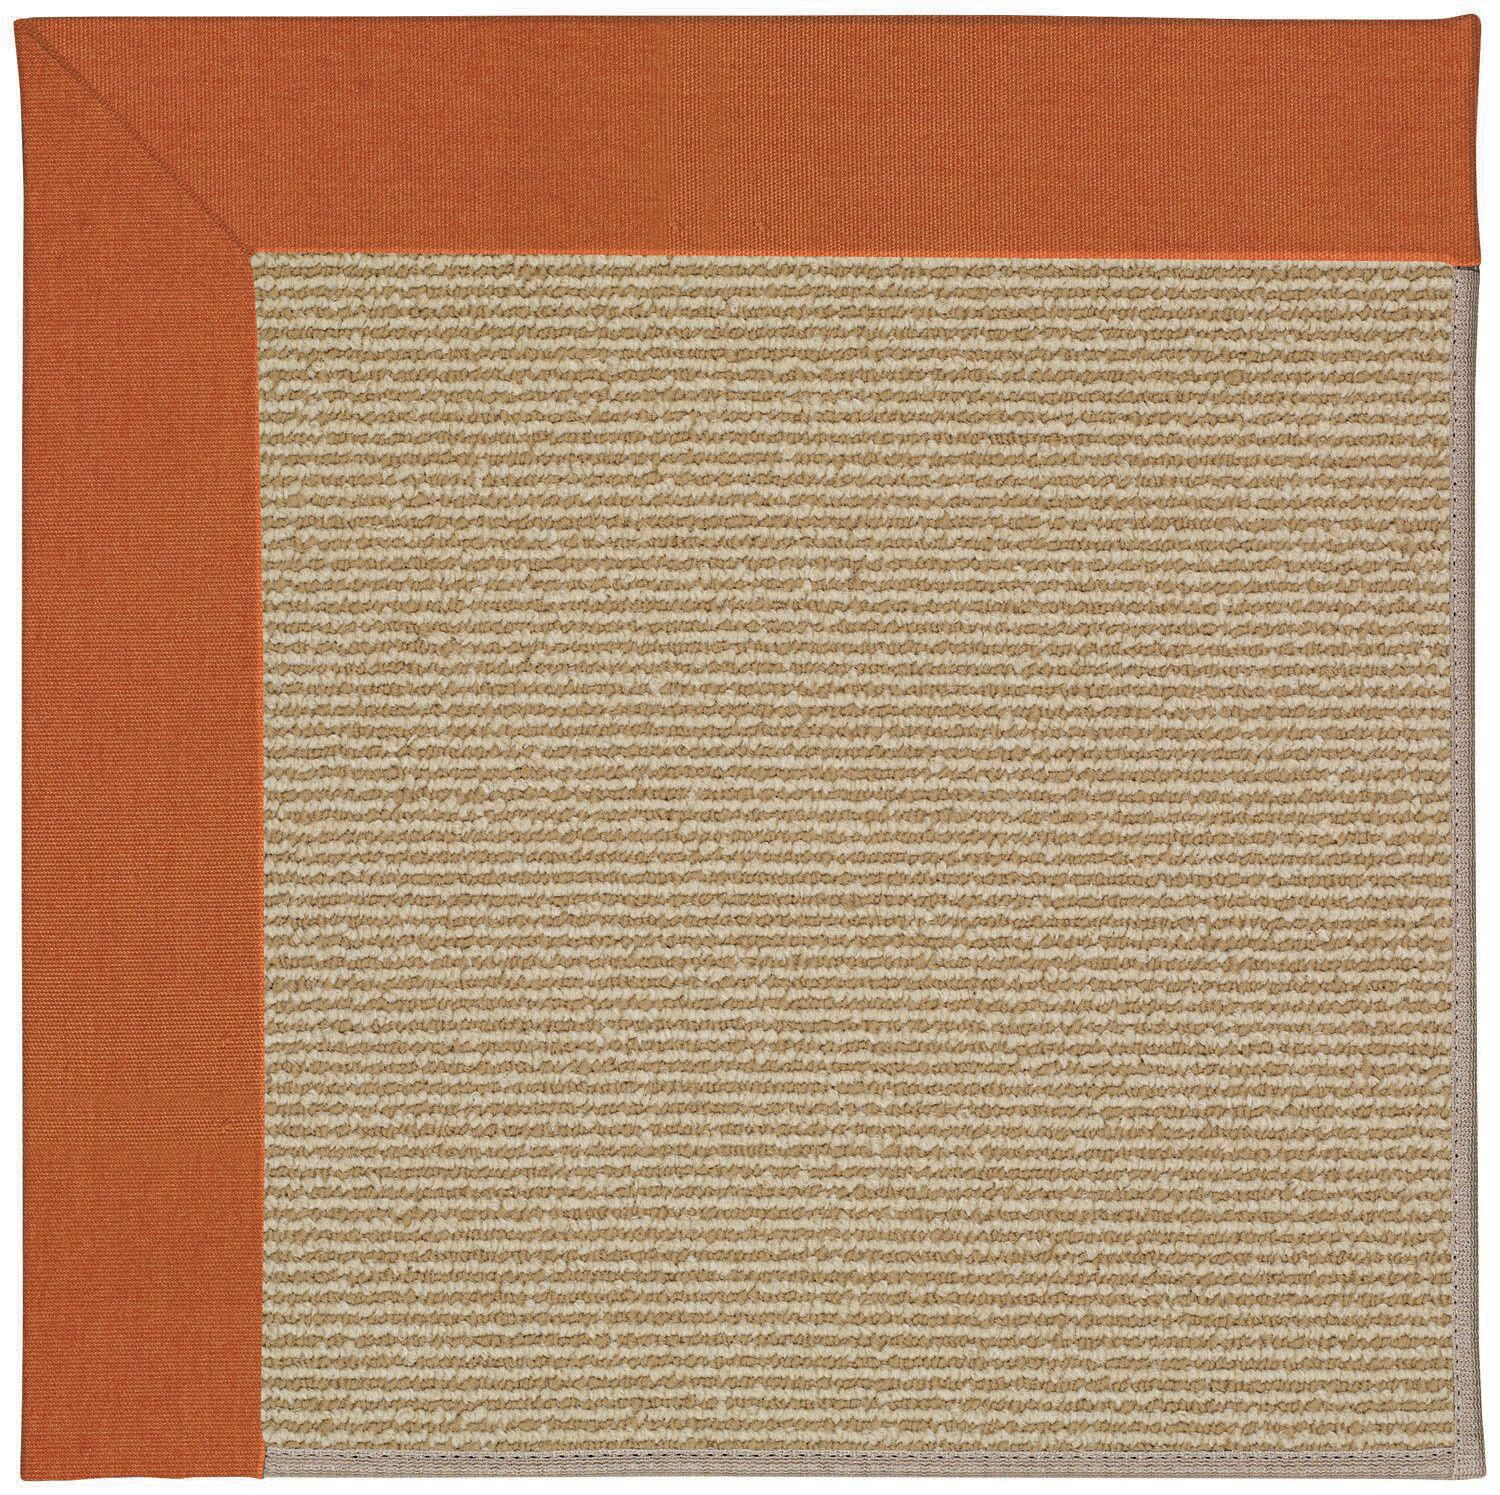 Lisle Machine Tufted Russet/Brown Indoor/Outdoor Area Rug Rug Size: Rectangle 4' x 6'